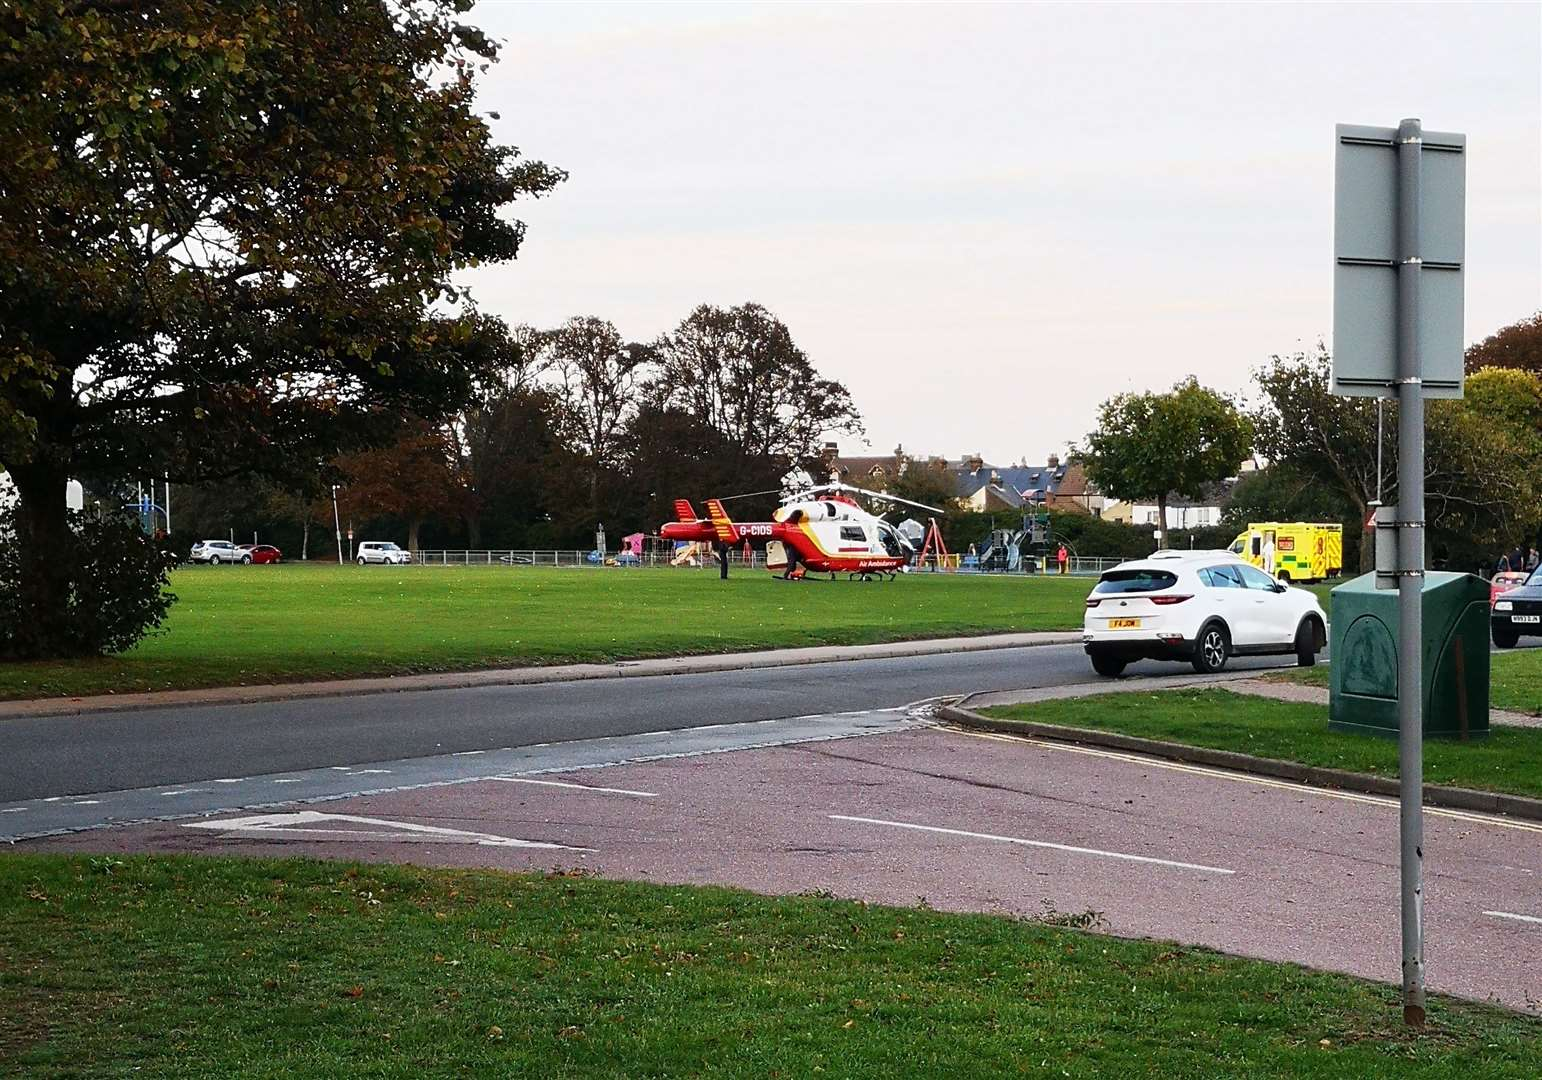 Emergency services were spotted at Victoria Park in Park Avenue, Deal Picture: Daniel Hodgson